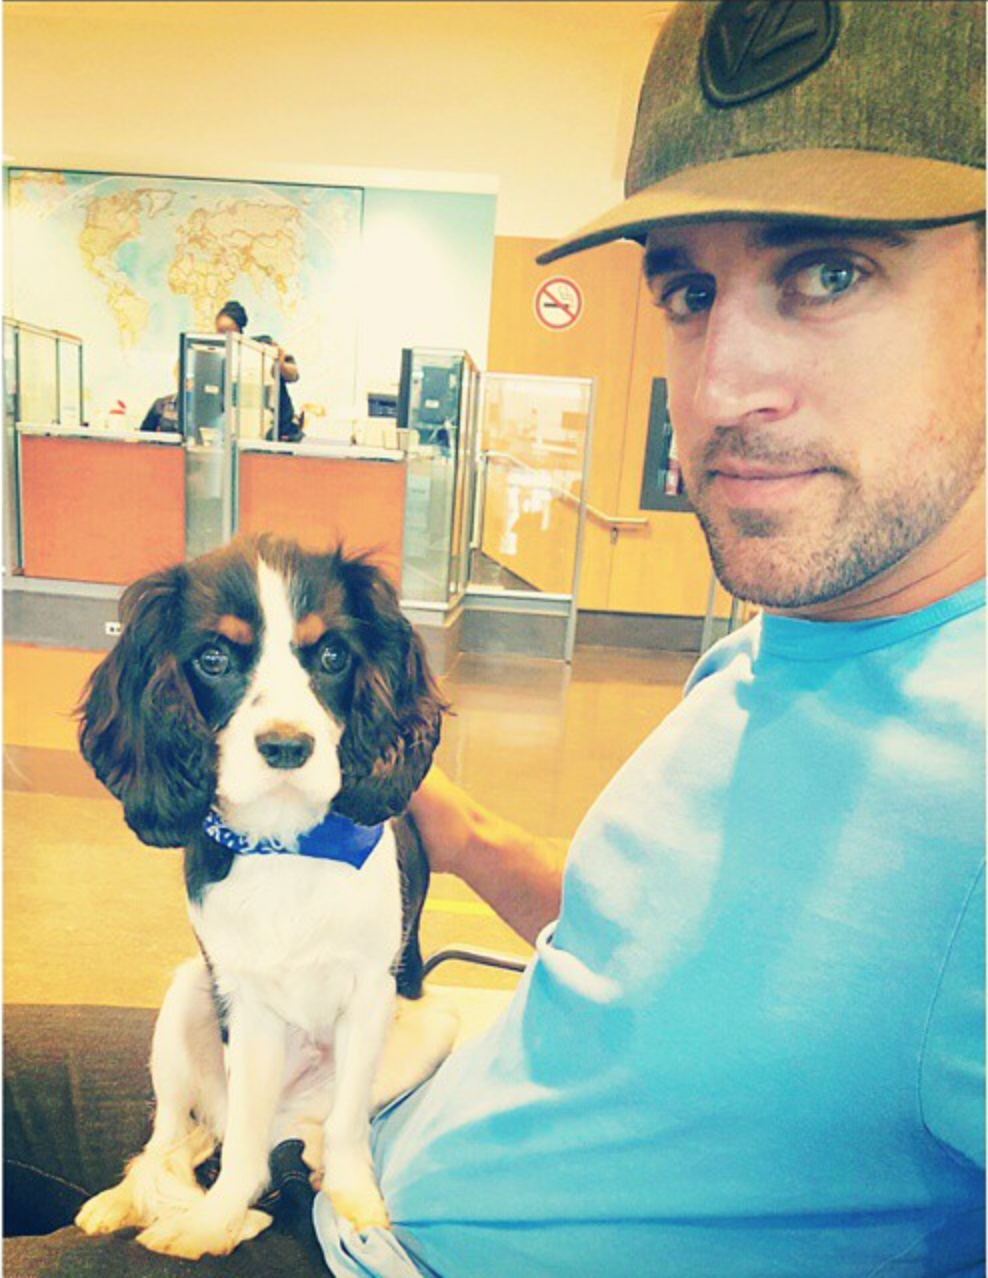 Aaron Rodgers Dog : aaron, rodgers, Aaron, Puppy, Chance., Http://lambeaufield.tumblr.com/post/122163175608/aaron-chance-rodgers, Rodgers,, Packers, Baby,, Green